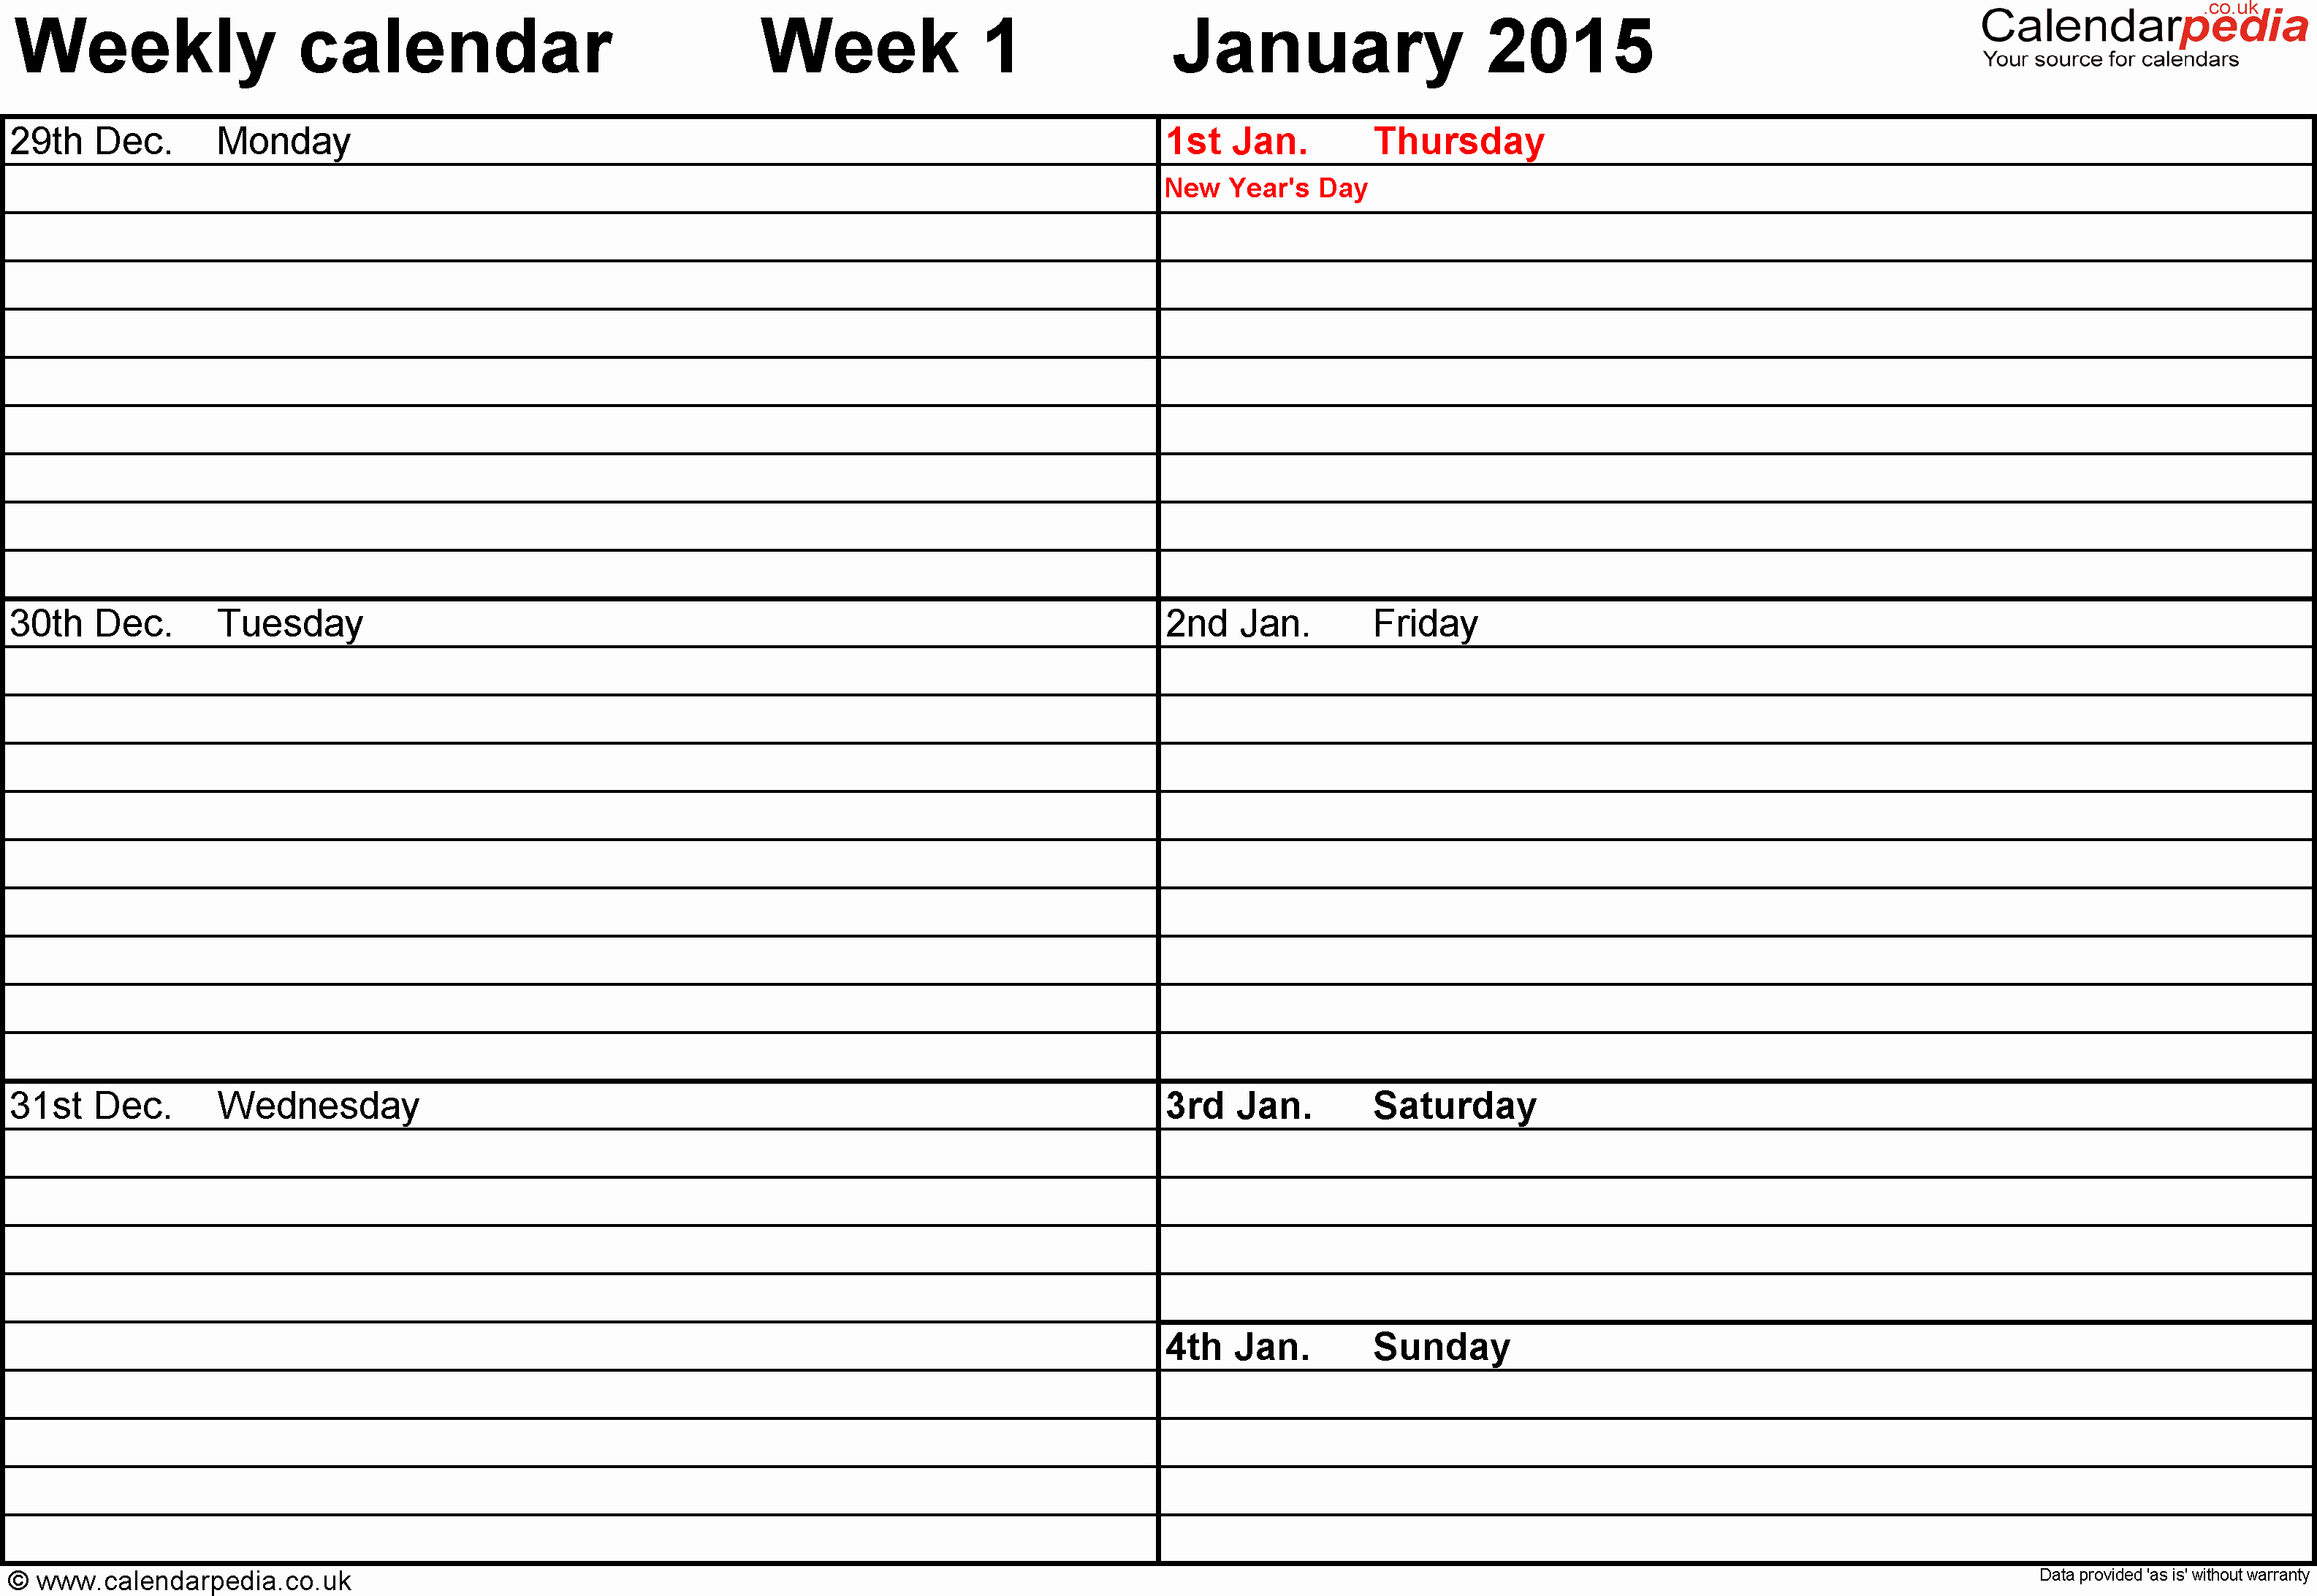 Week Schedule Template Pdf Unique Weekly Calendar Pdf